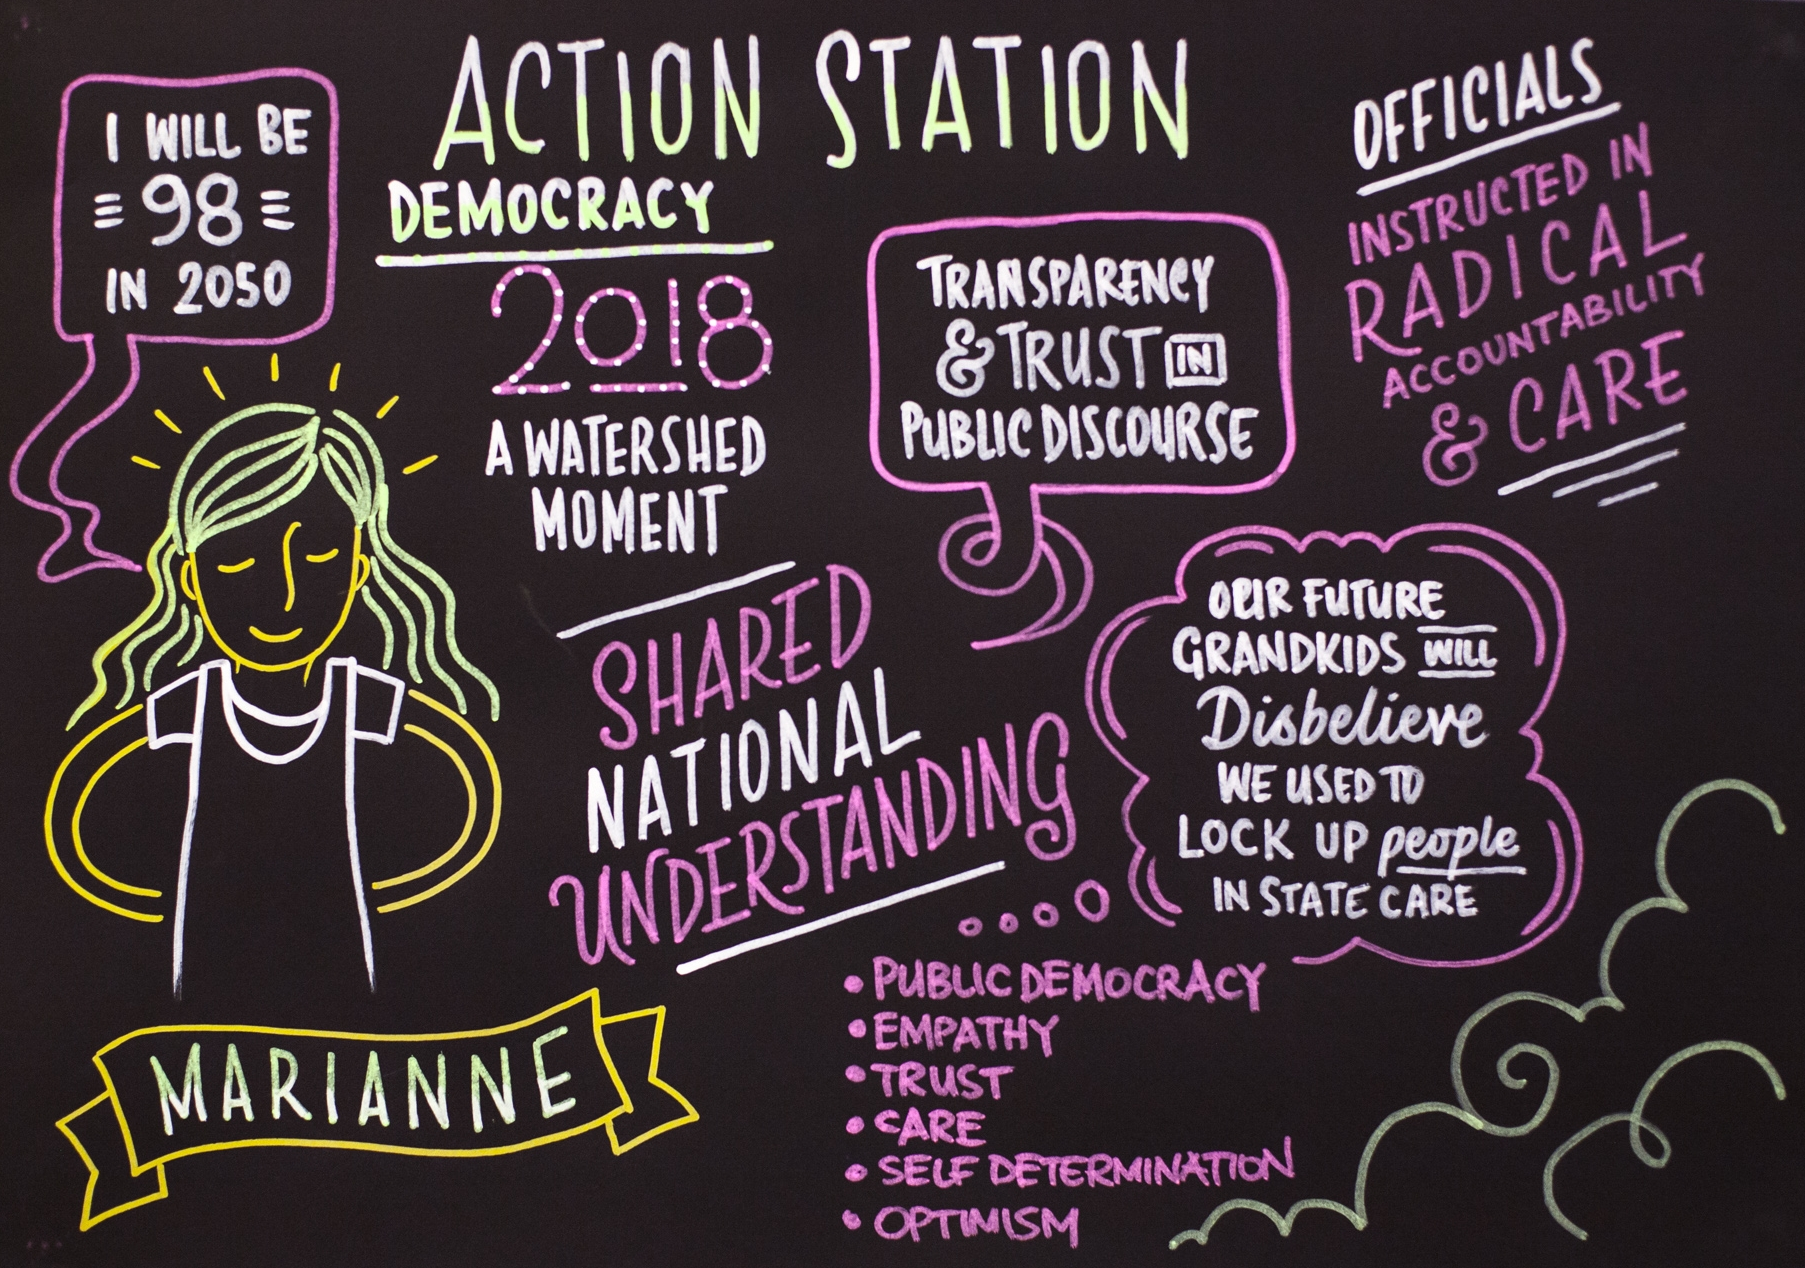 League of Live Illustrators' capture of Marianne's talk